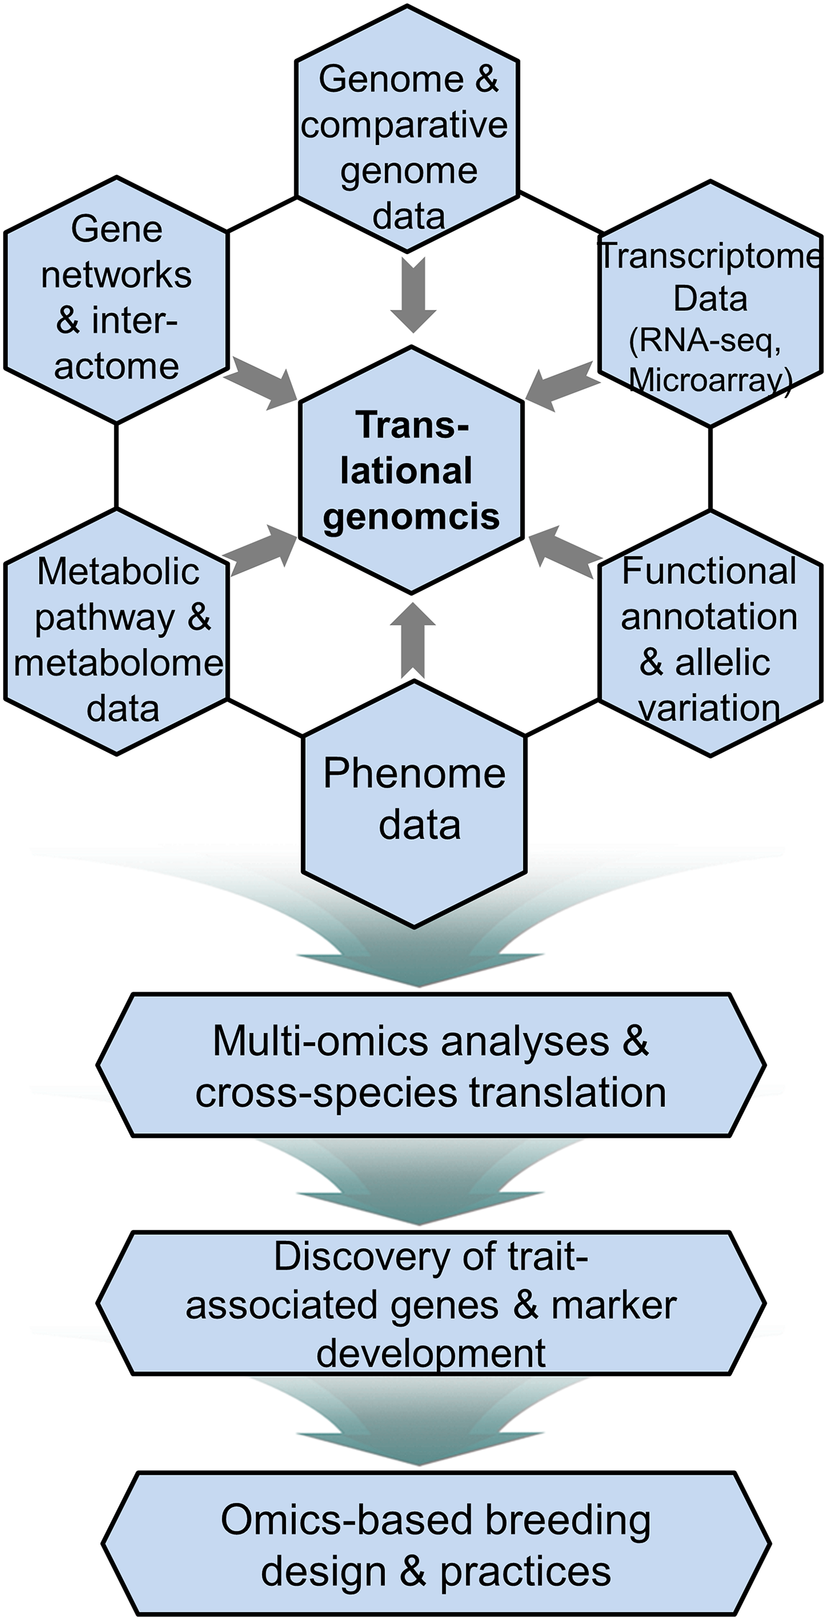 Translational genomics and multi-omics integrated approaches